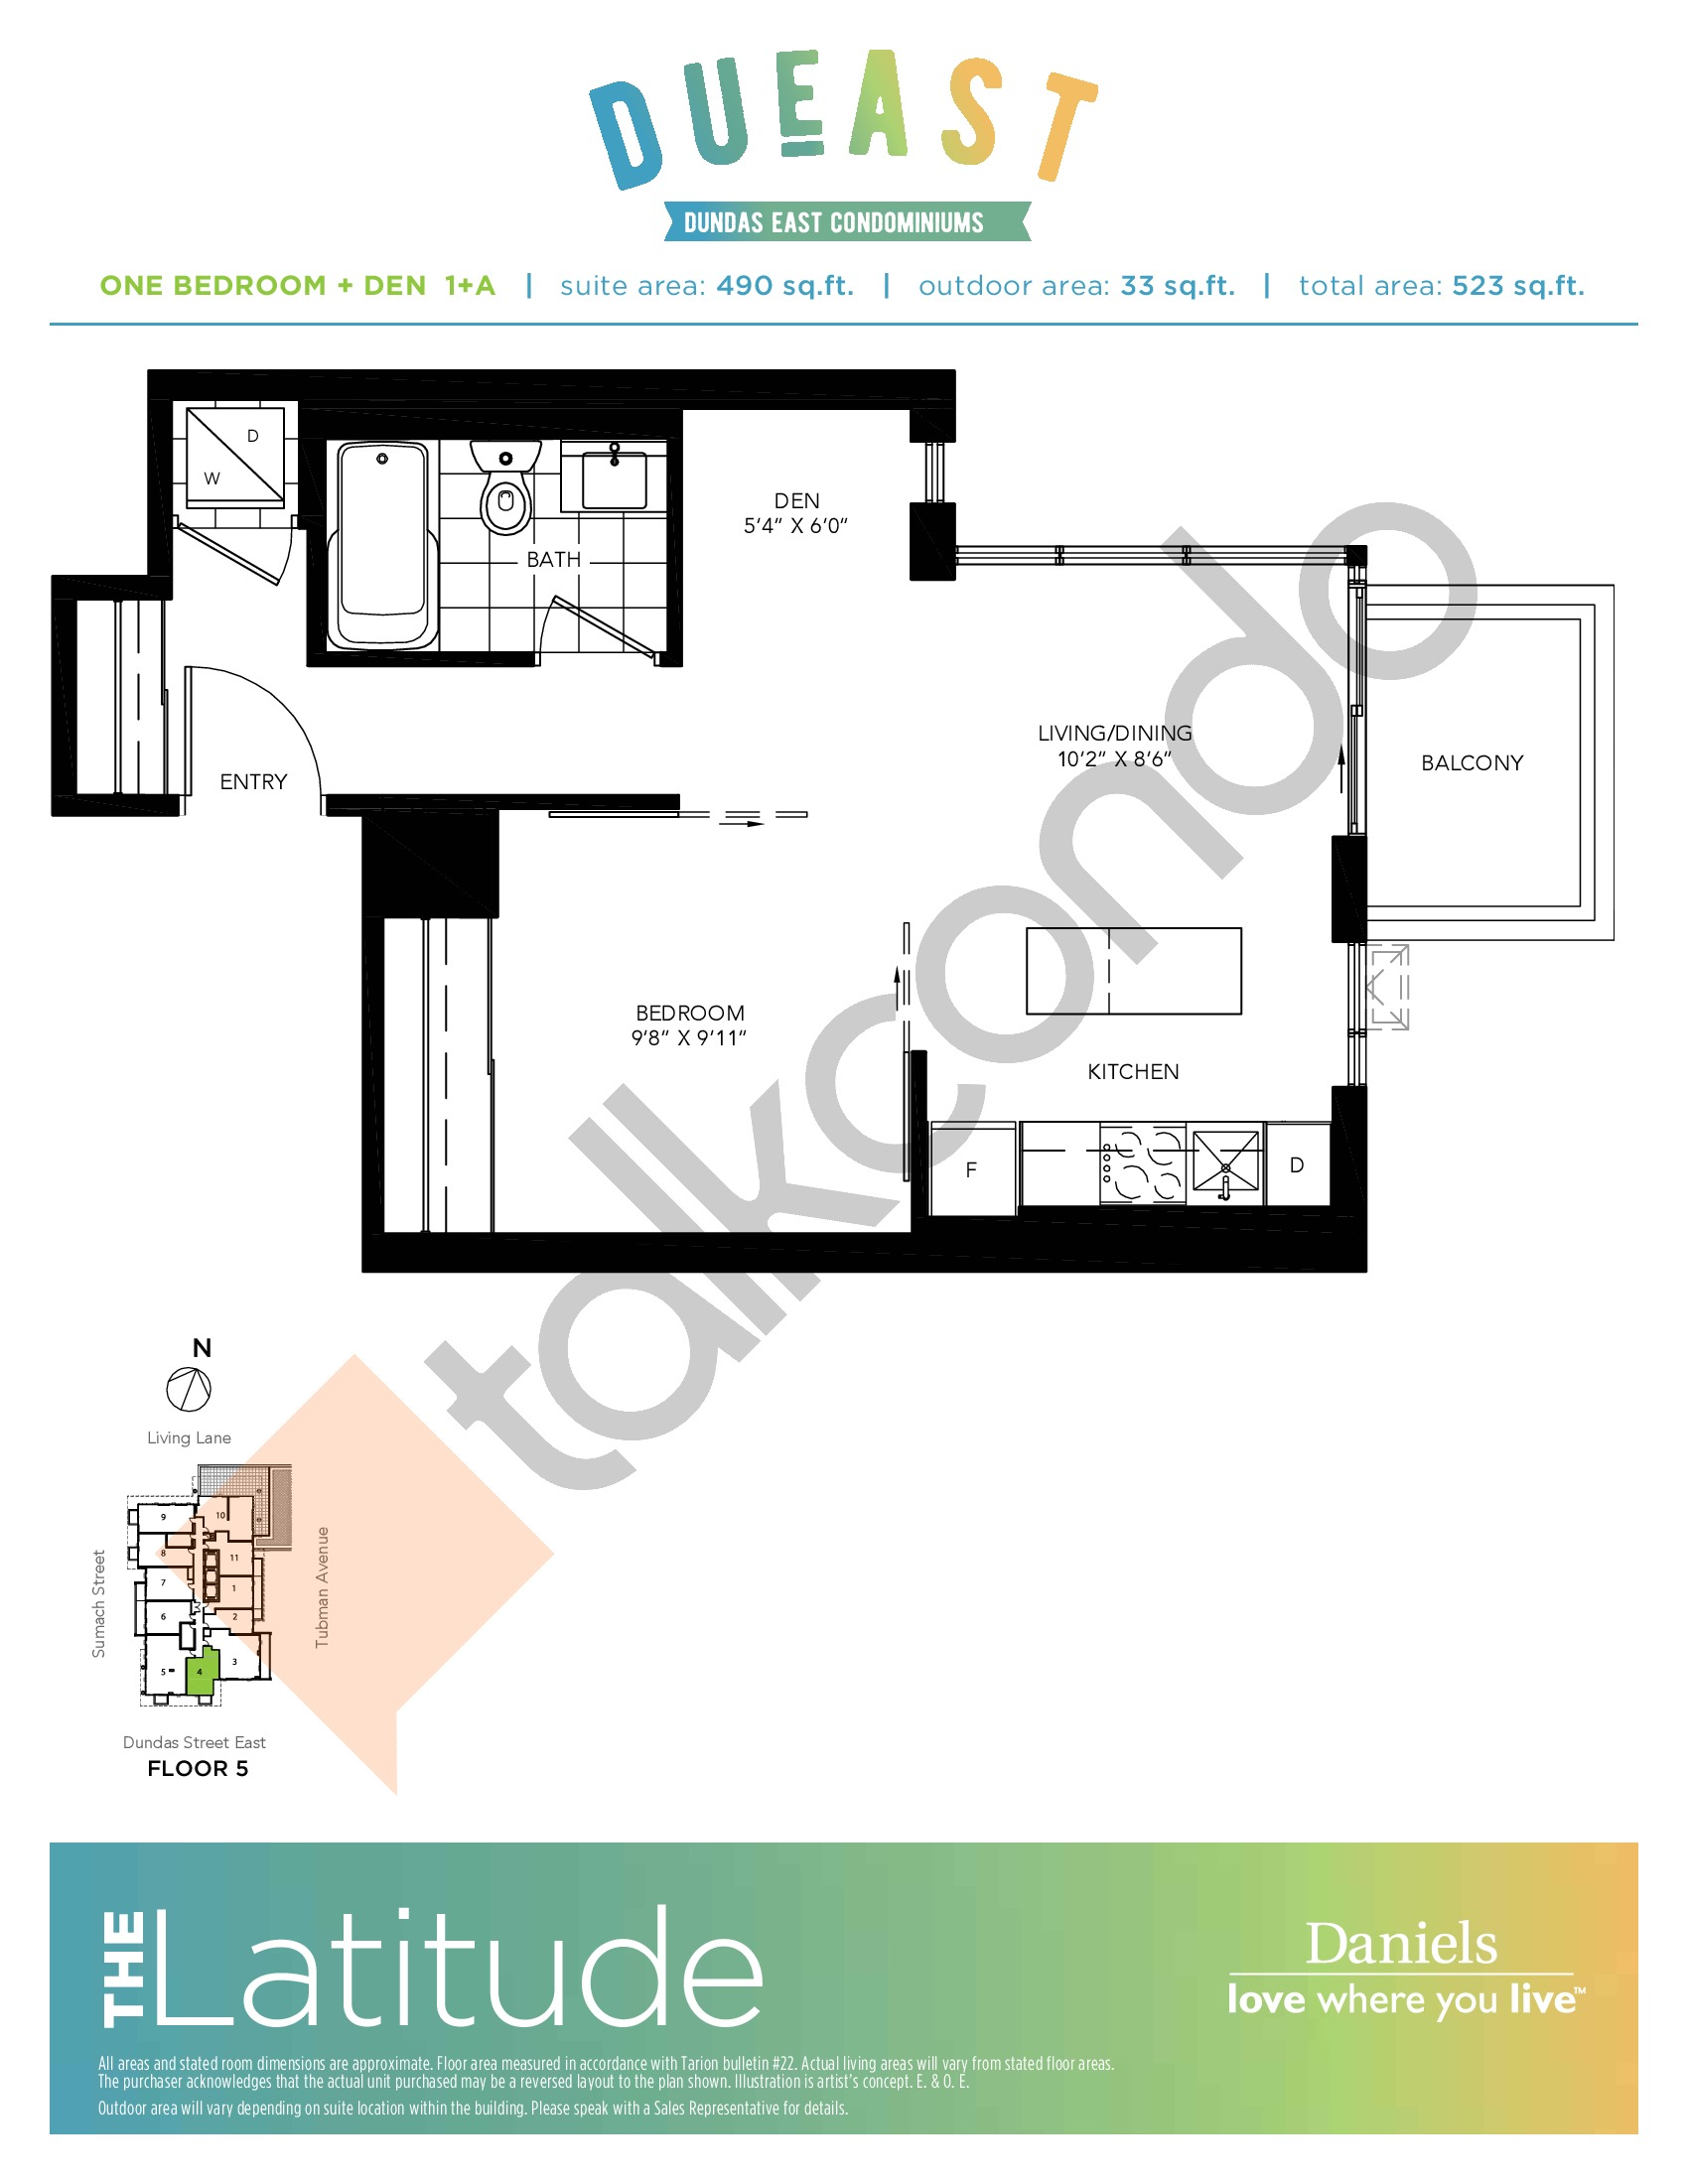 The Latitude (1+A) Floor Plan at DuEast Condos - 490 sq.ft